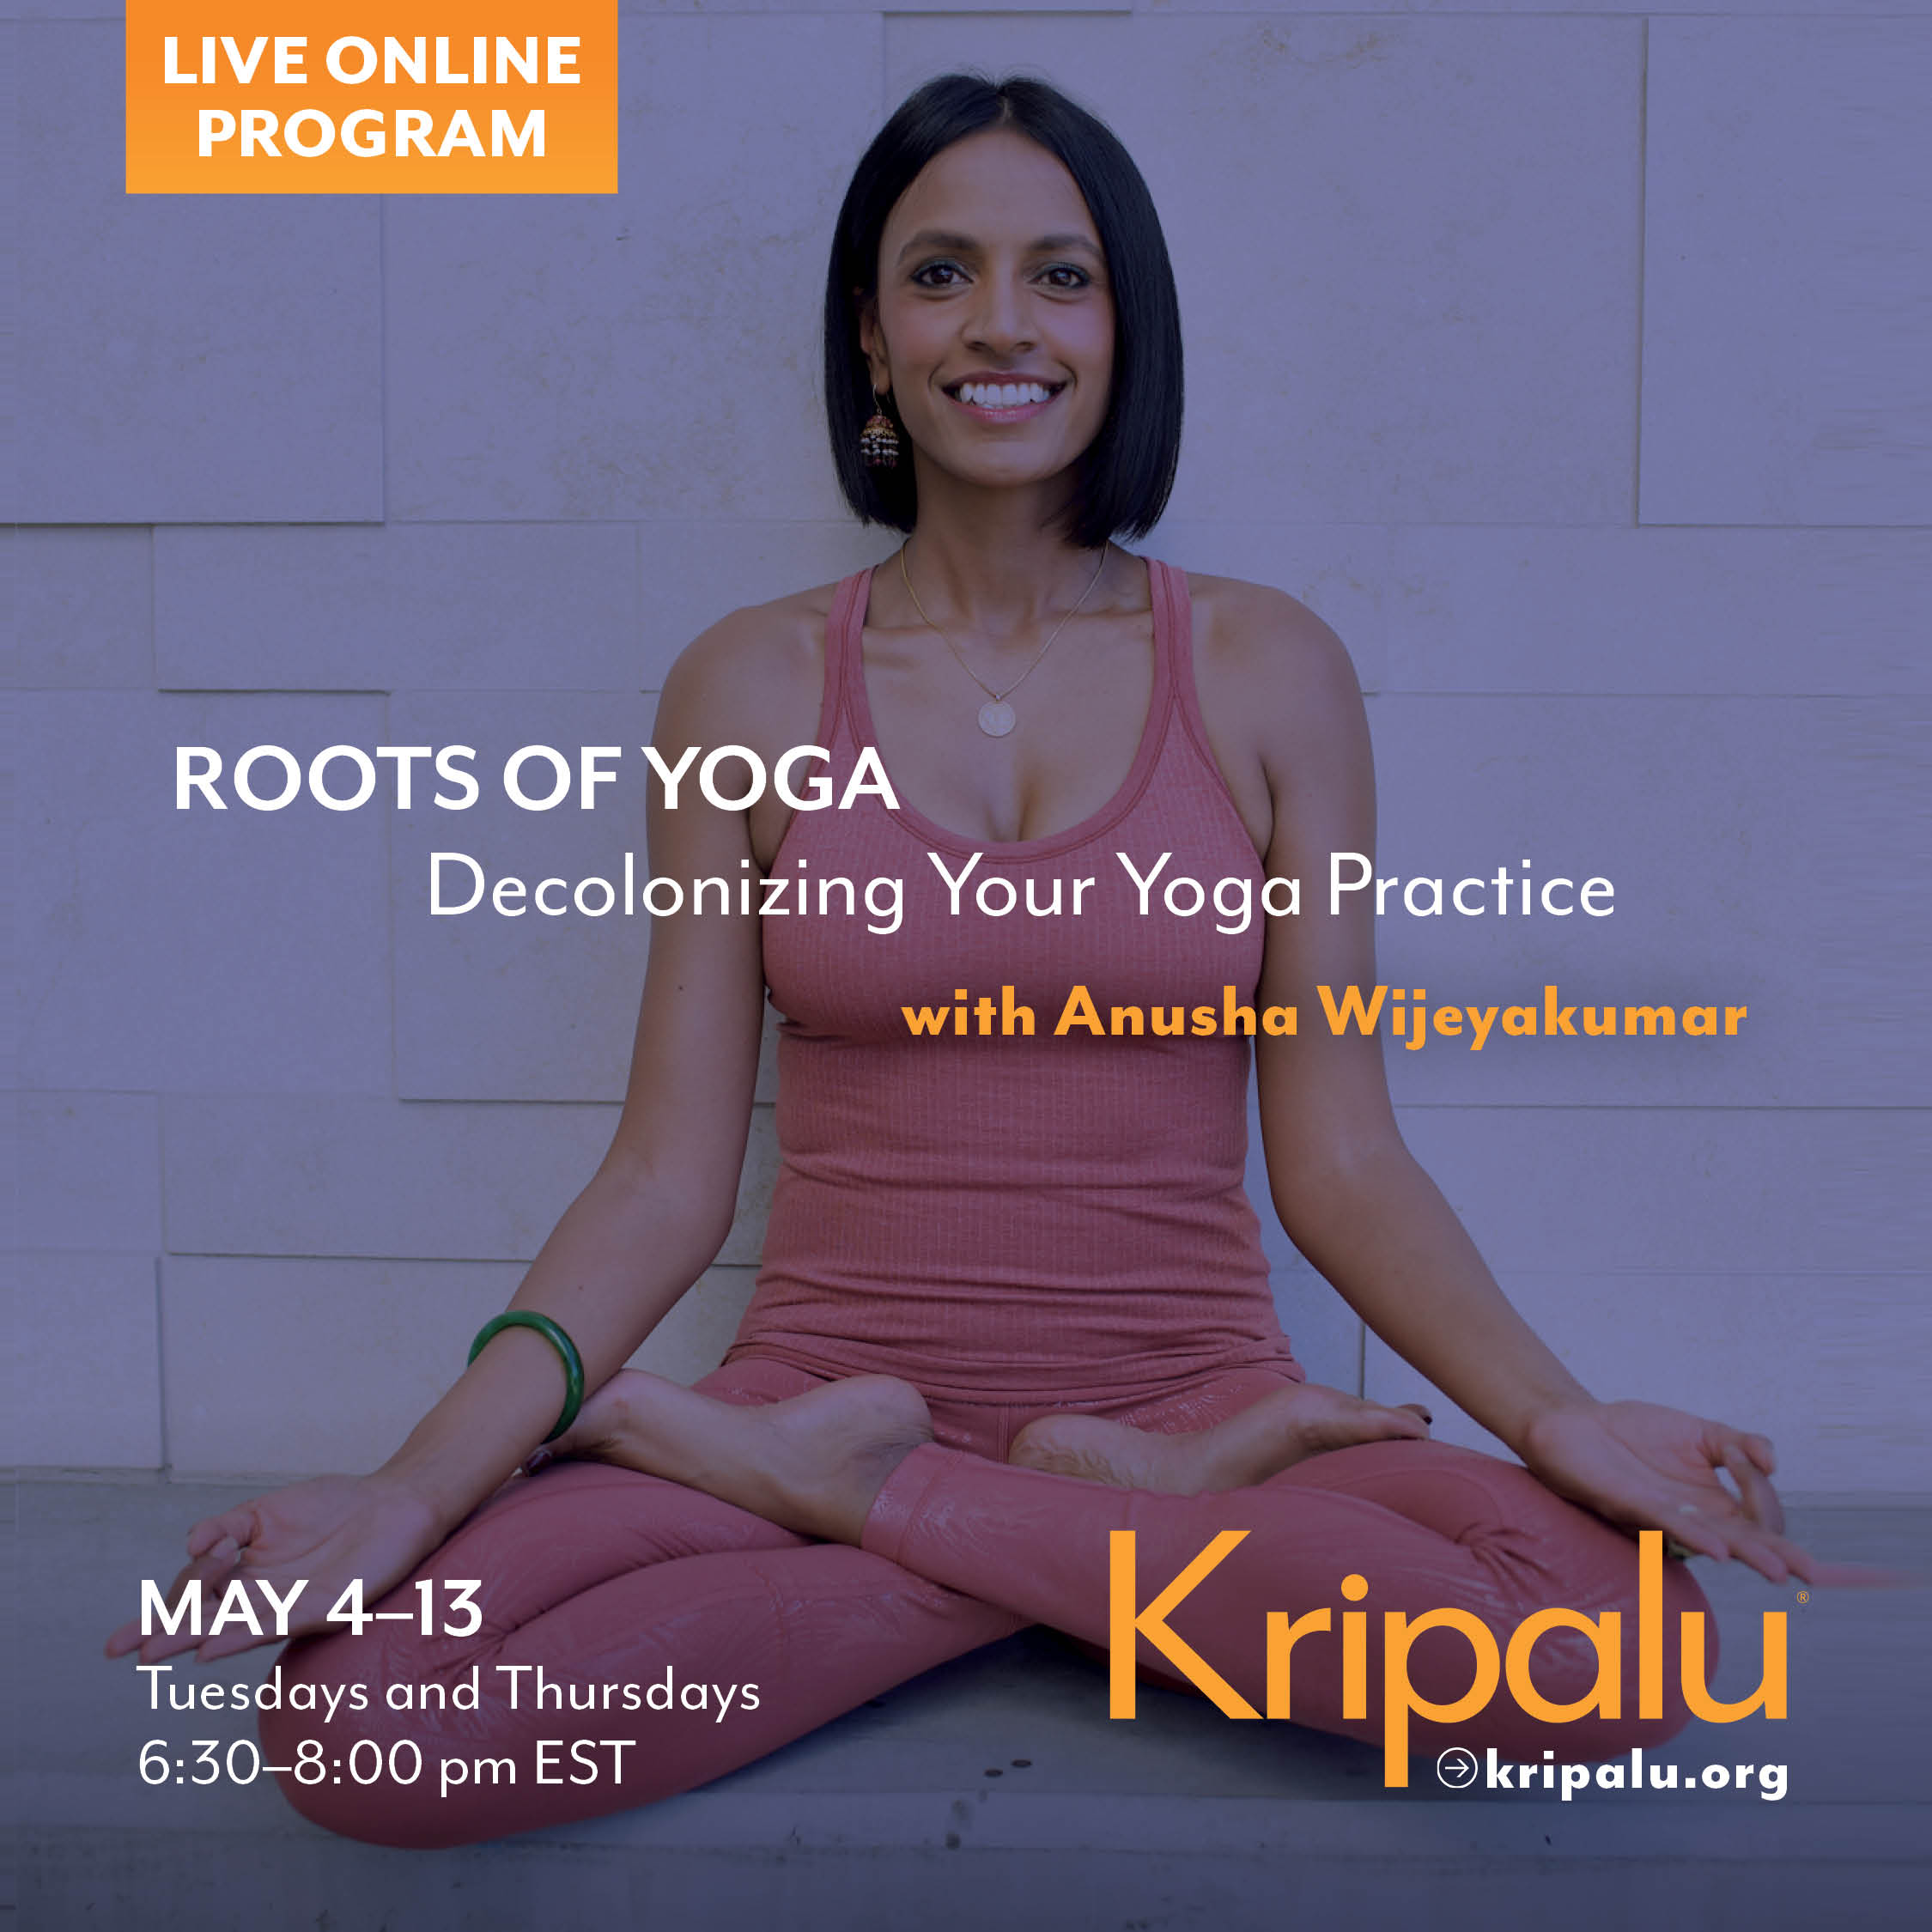 Roots of Yoga: Decolonizing Your Yoga Practice